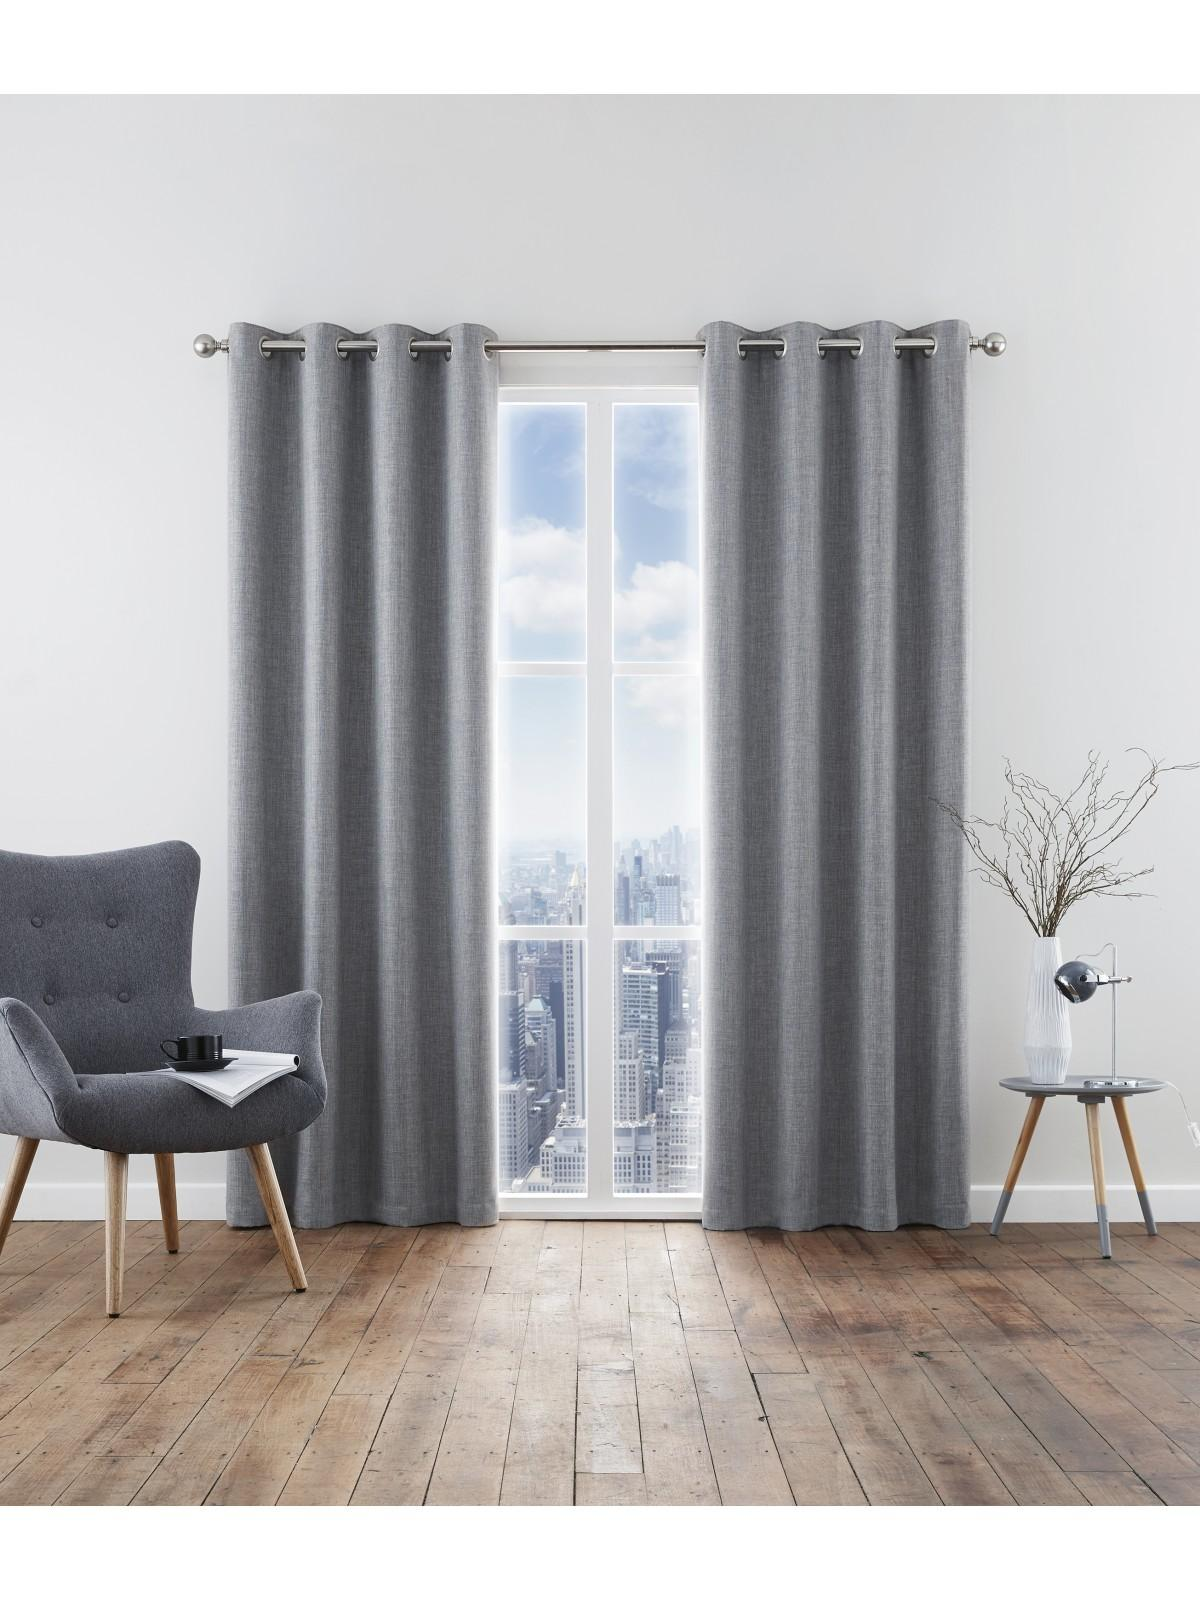 curtains cotton p are for grey living cool room dark